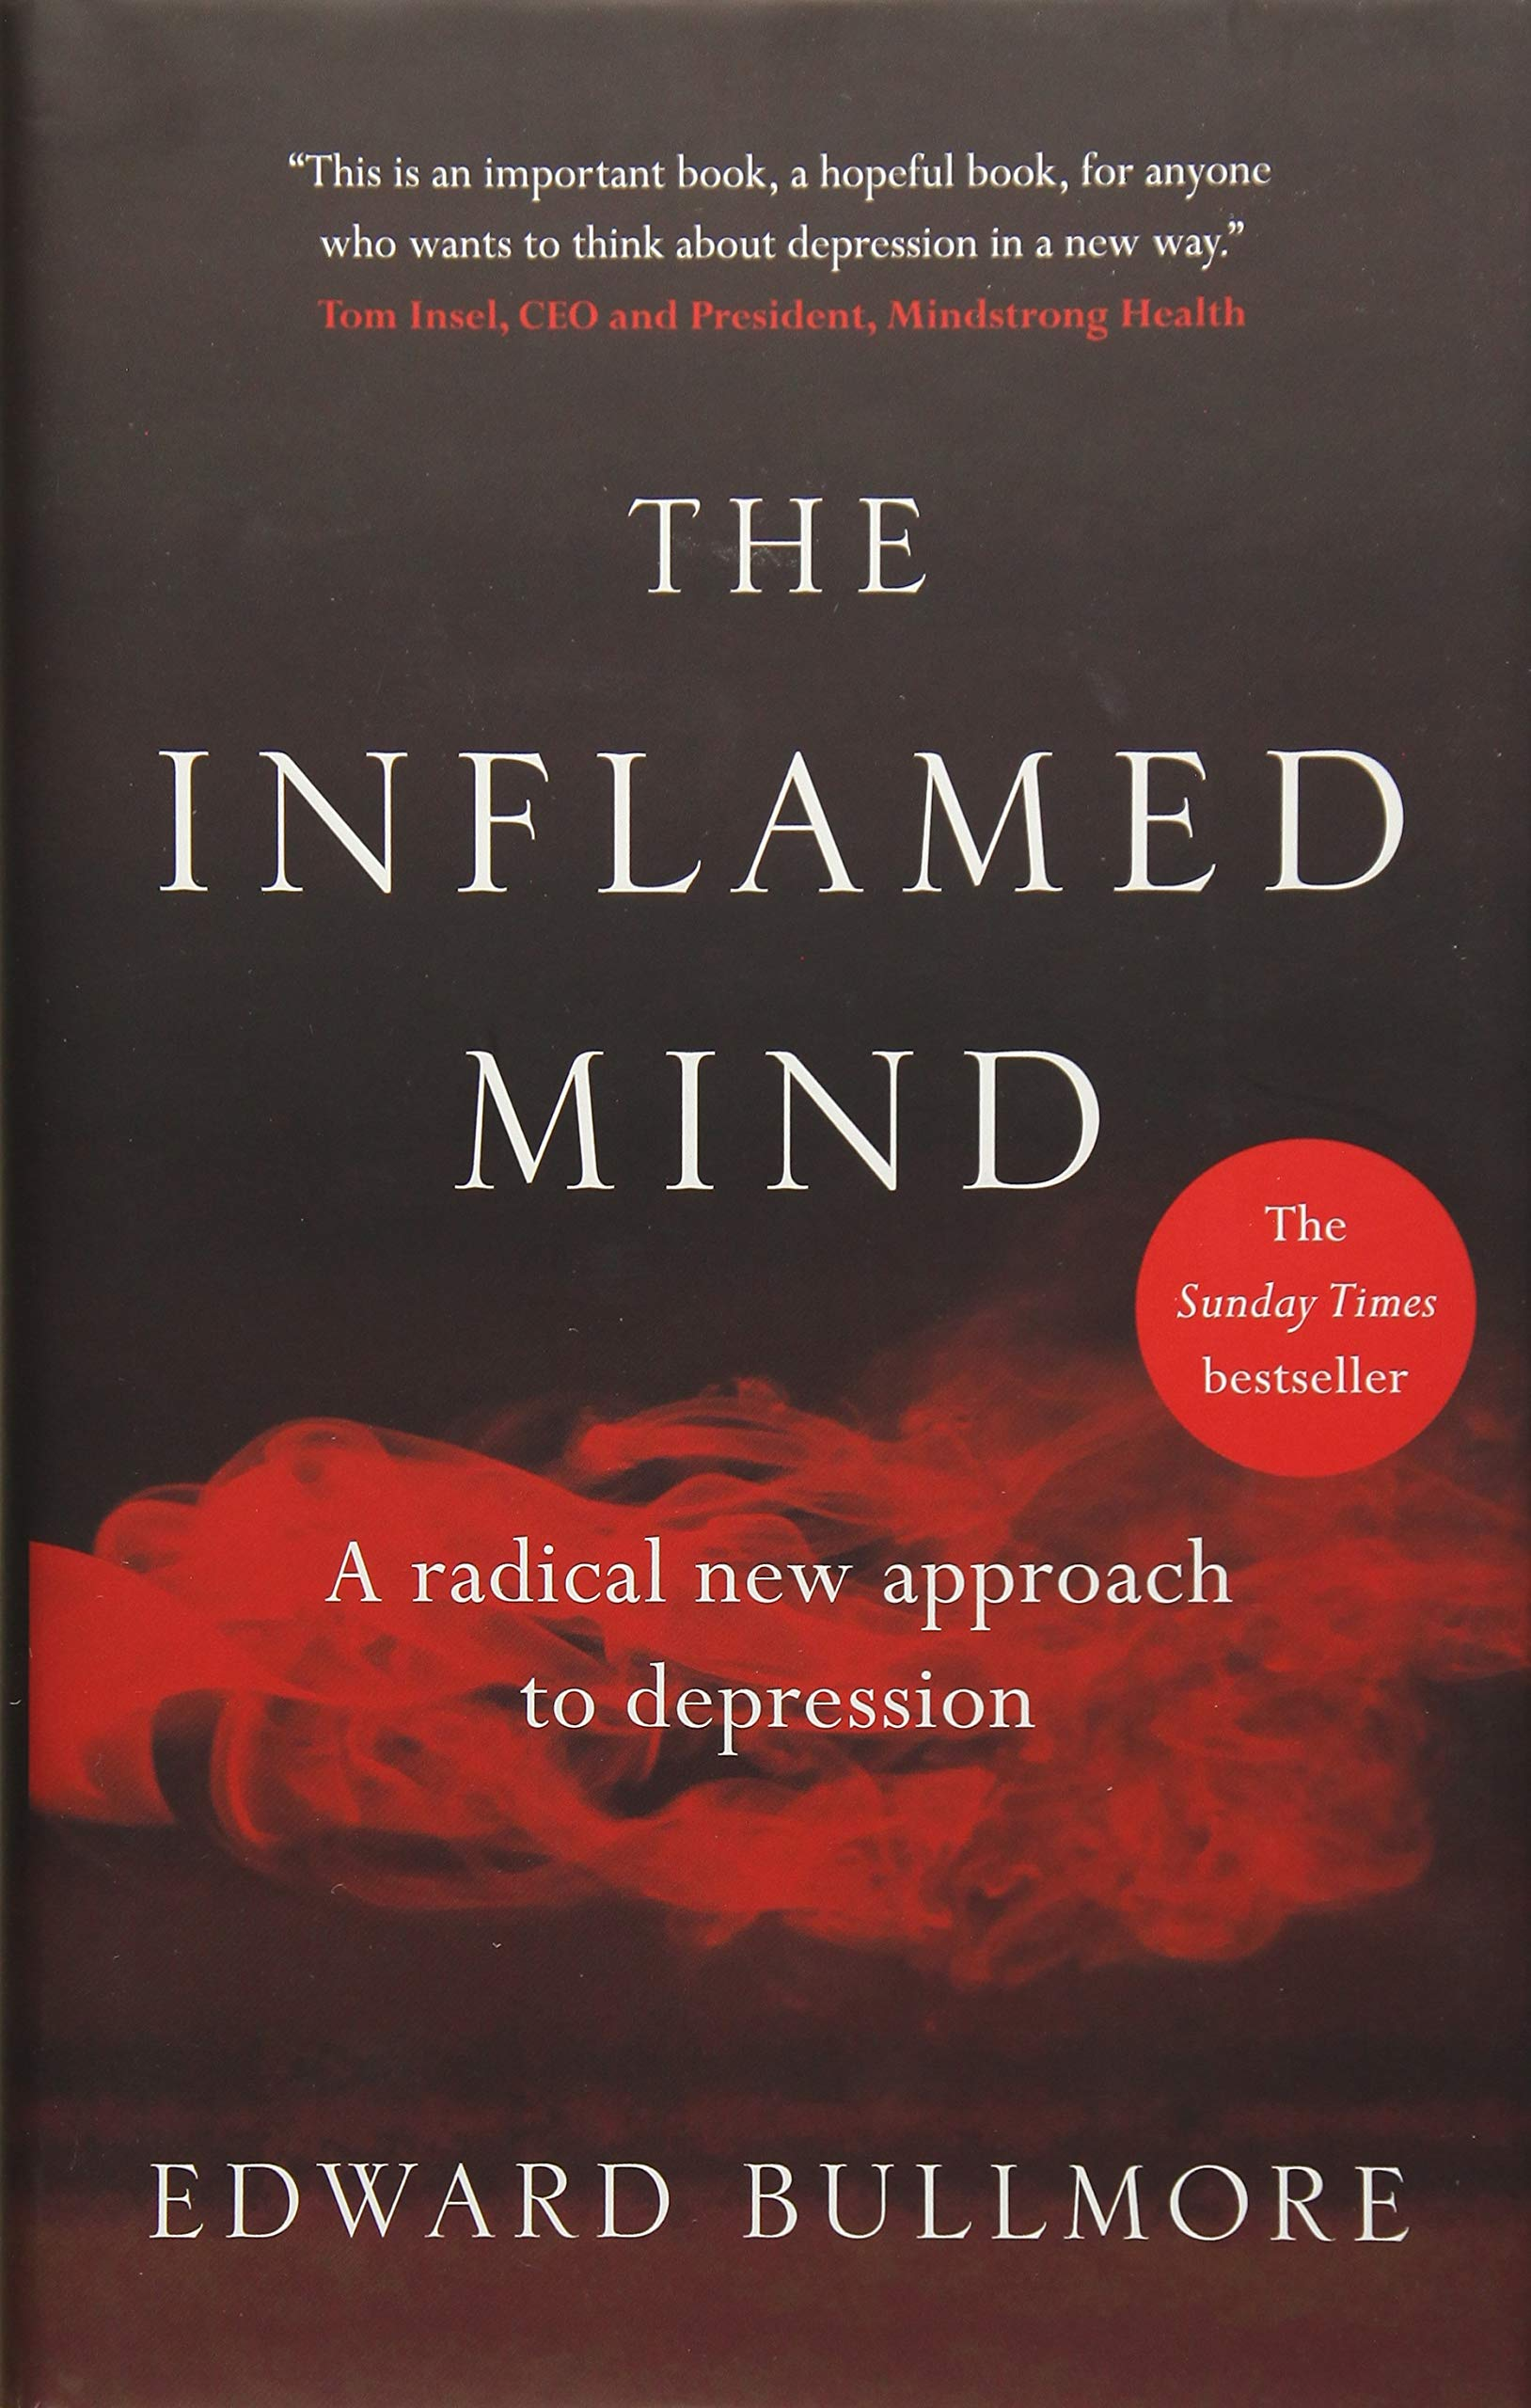 The Inflamed Mind A Radical New Approach To Depression Amazoncouk Edward Bullmore 9781780723501 Books